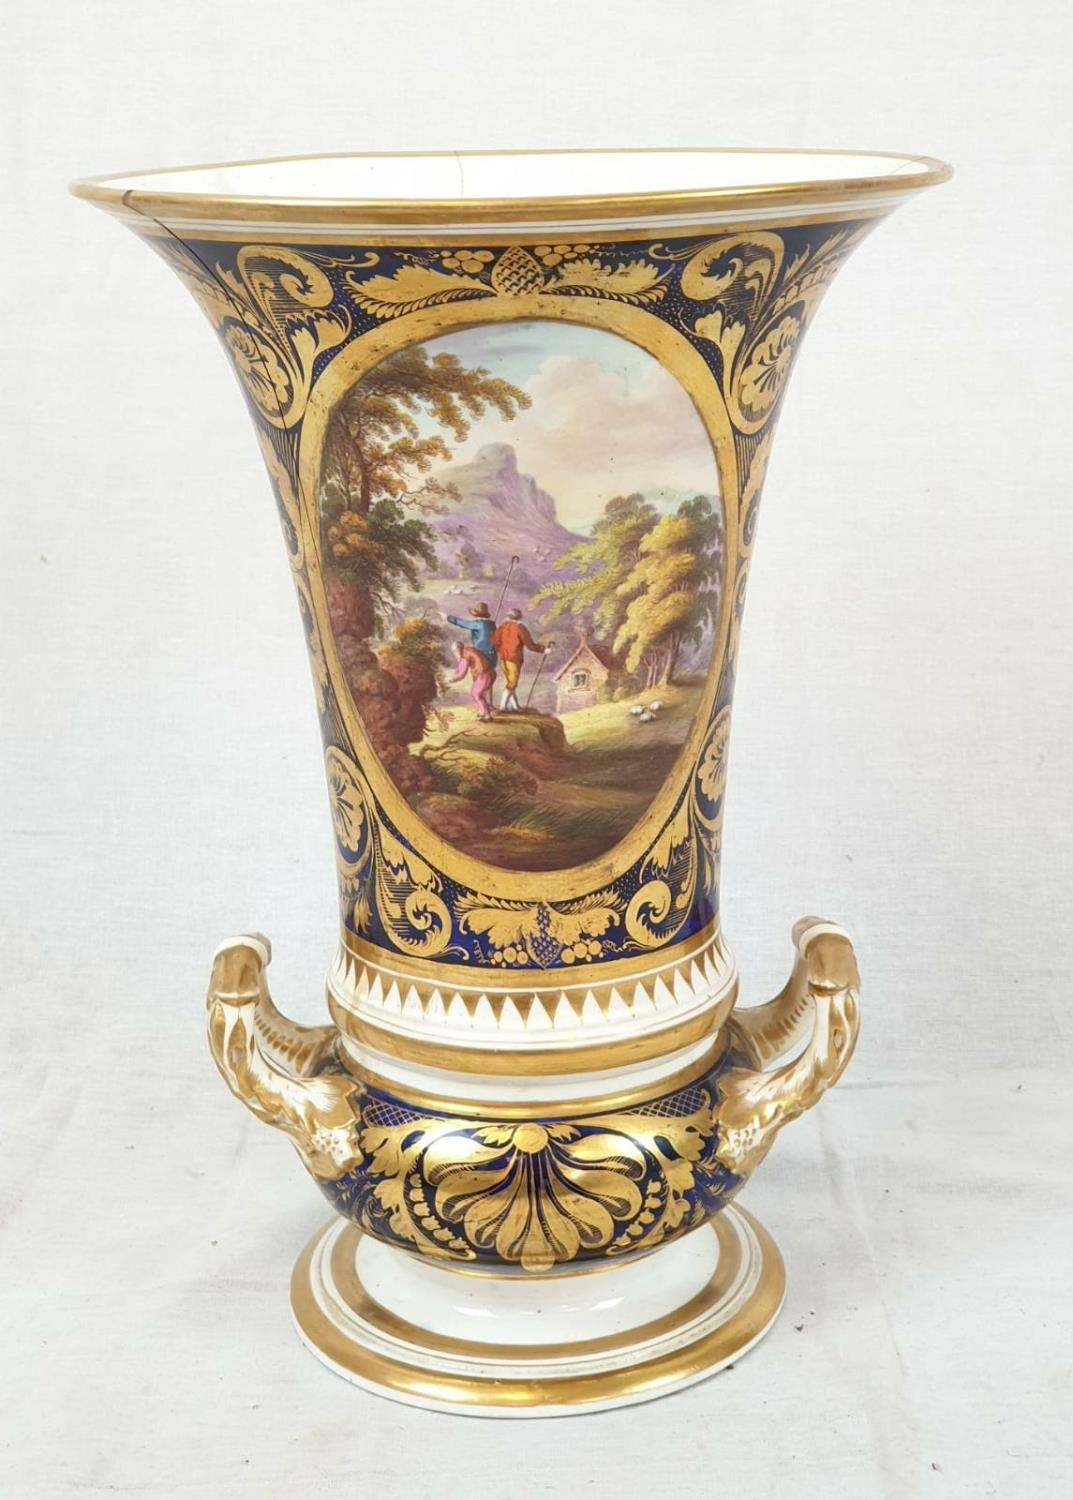 Royal Derby (Crown): In Spain Vase. Spanish 1830. Beautifully Decorated but damaged firing cracks.